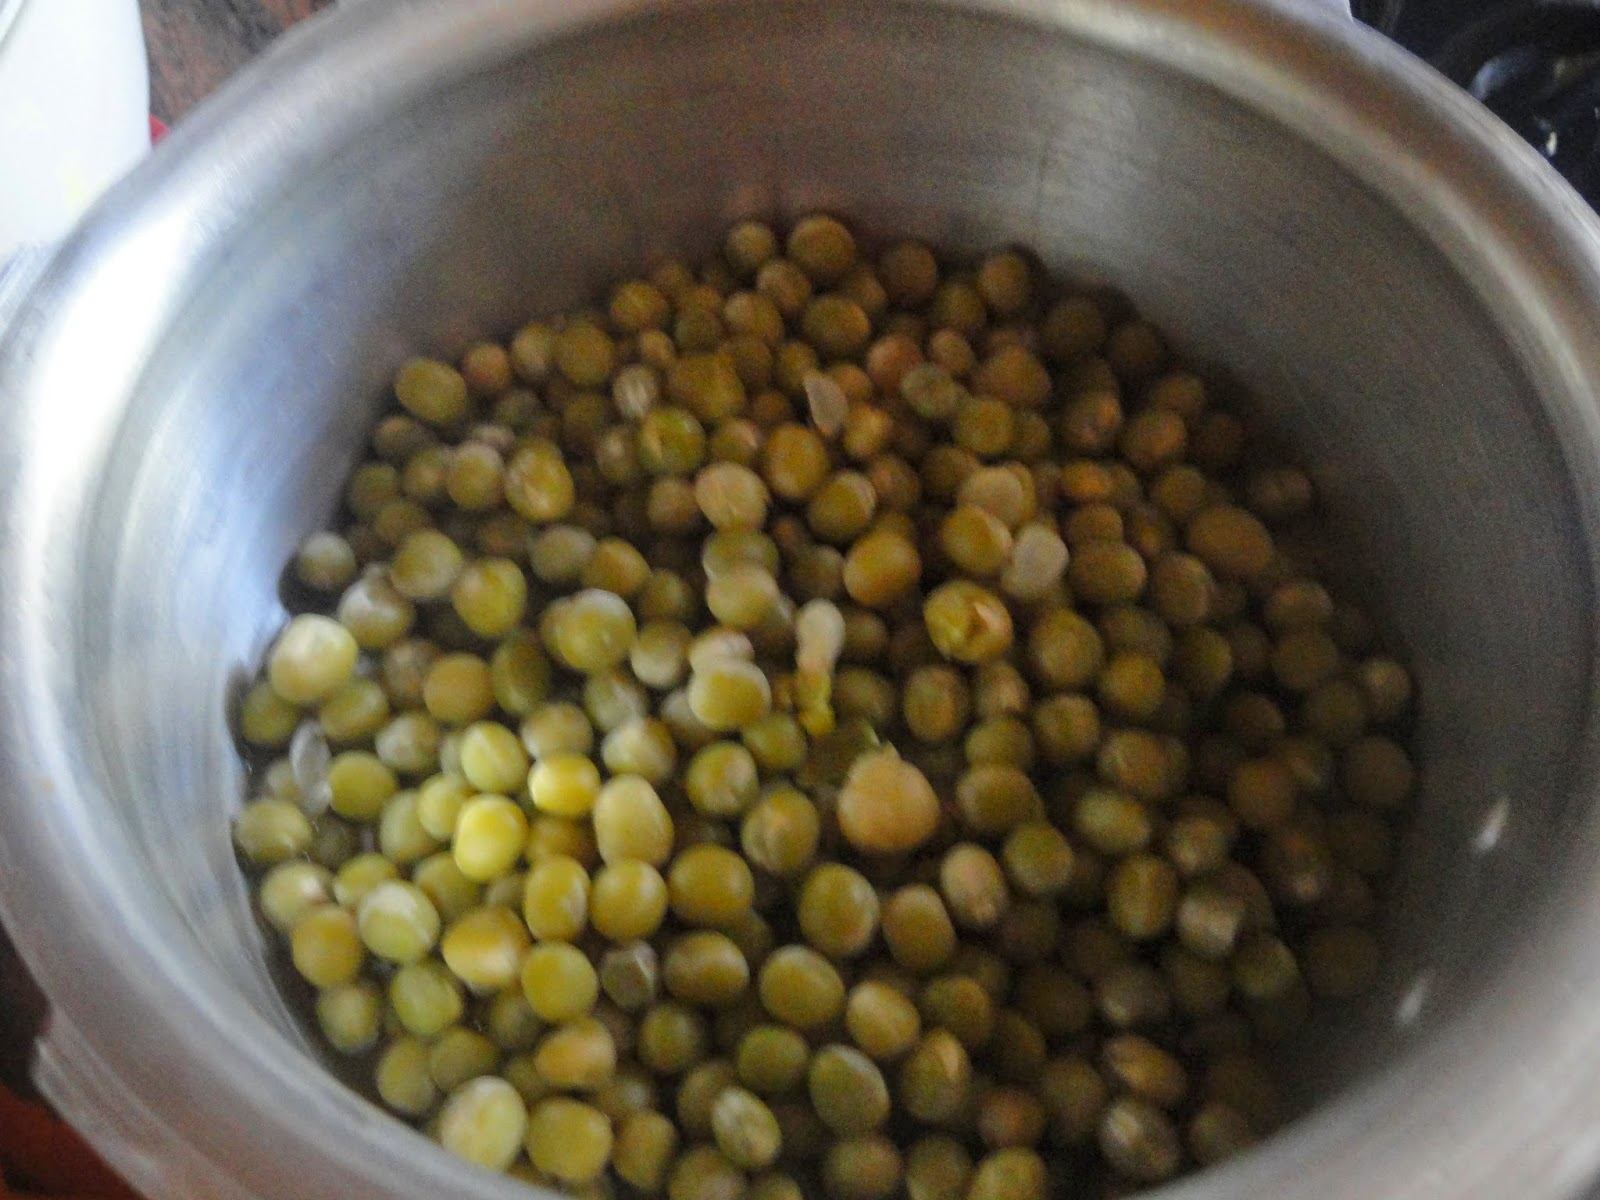 Pressure cooked dried peas